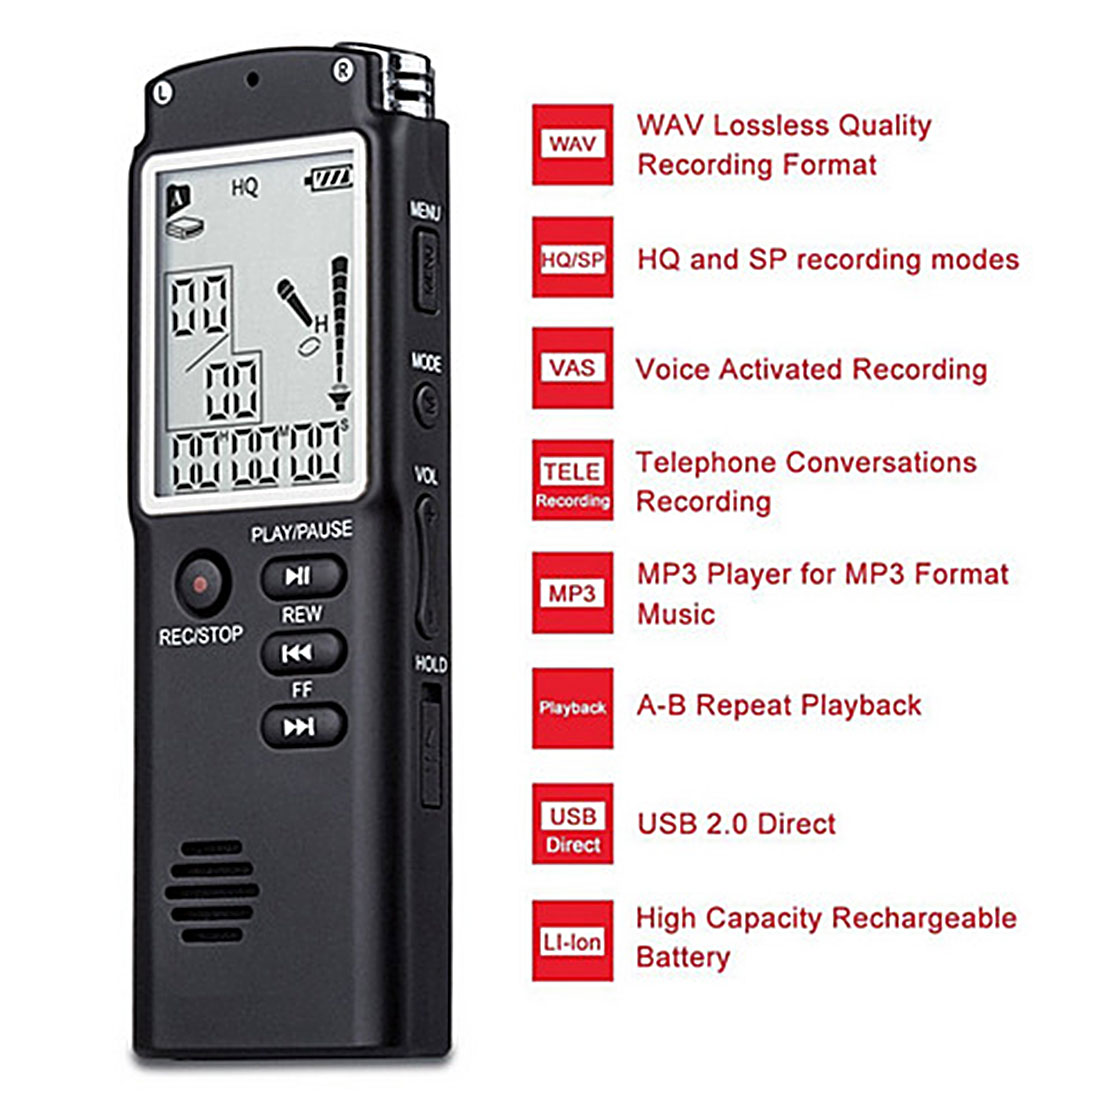 Marsnaska Newest 8GB Voice Recorder USB Professional 96 Hours Dictaphone Digital Audio Voice Recorder With for WAV,MP3 Player